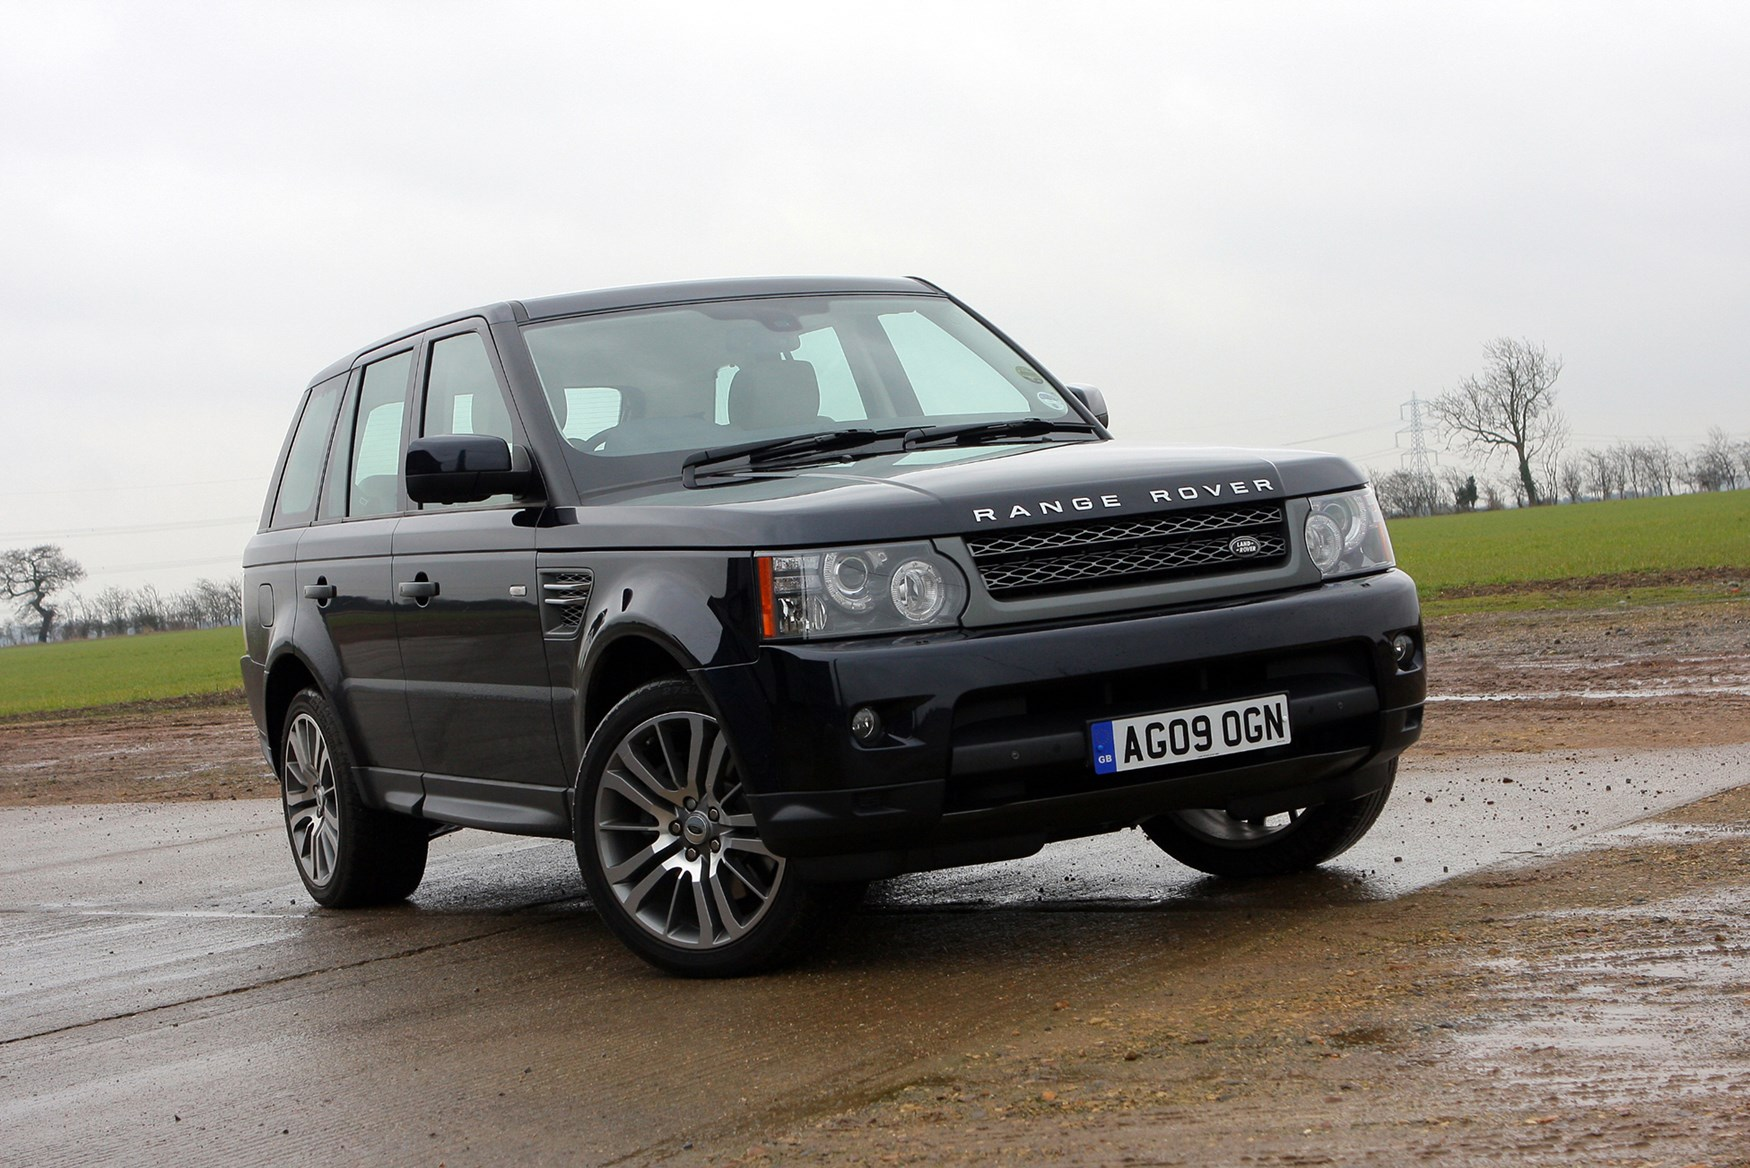 land rover range rover sport estate review 2005 2013. Black Bedroom Furniture Sets. Home Design Ideas